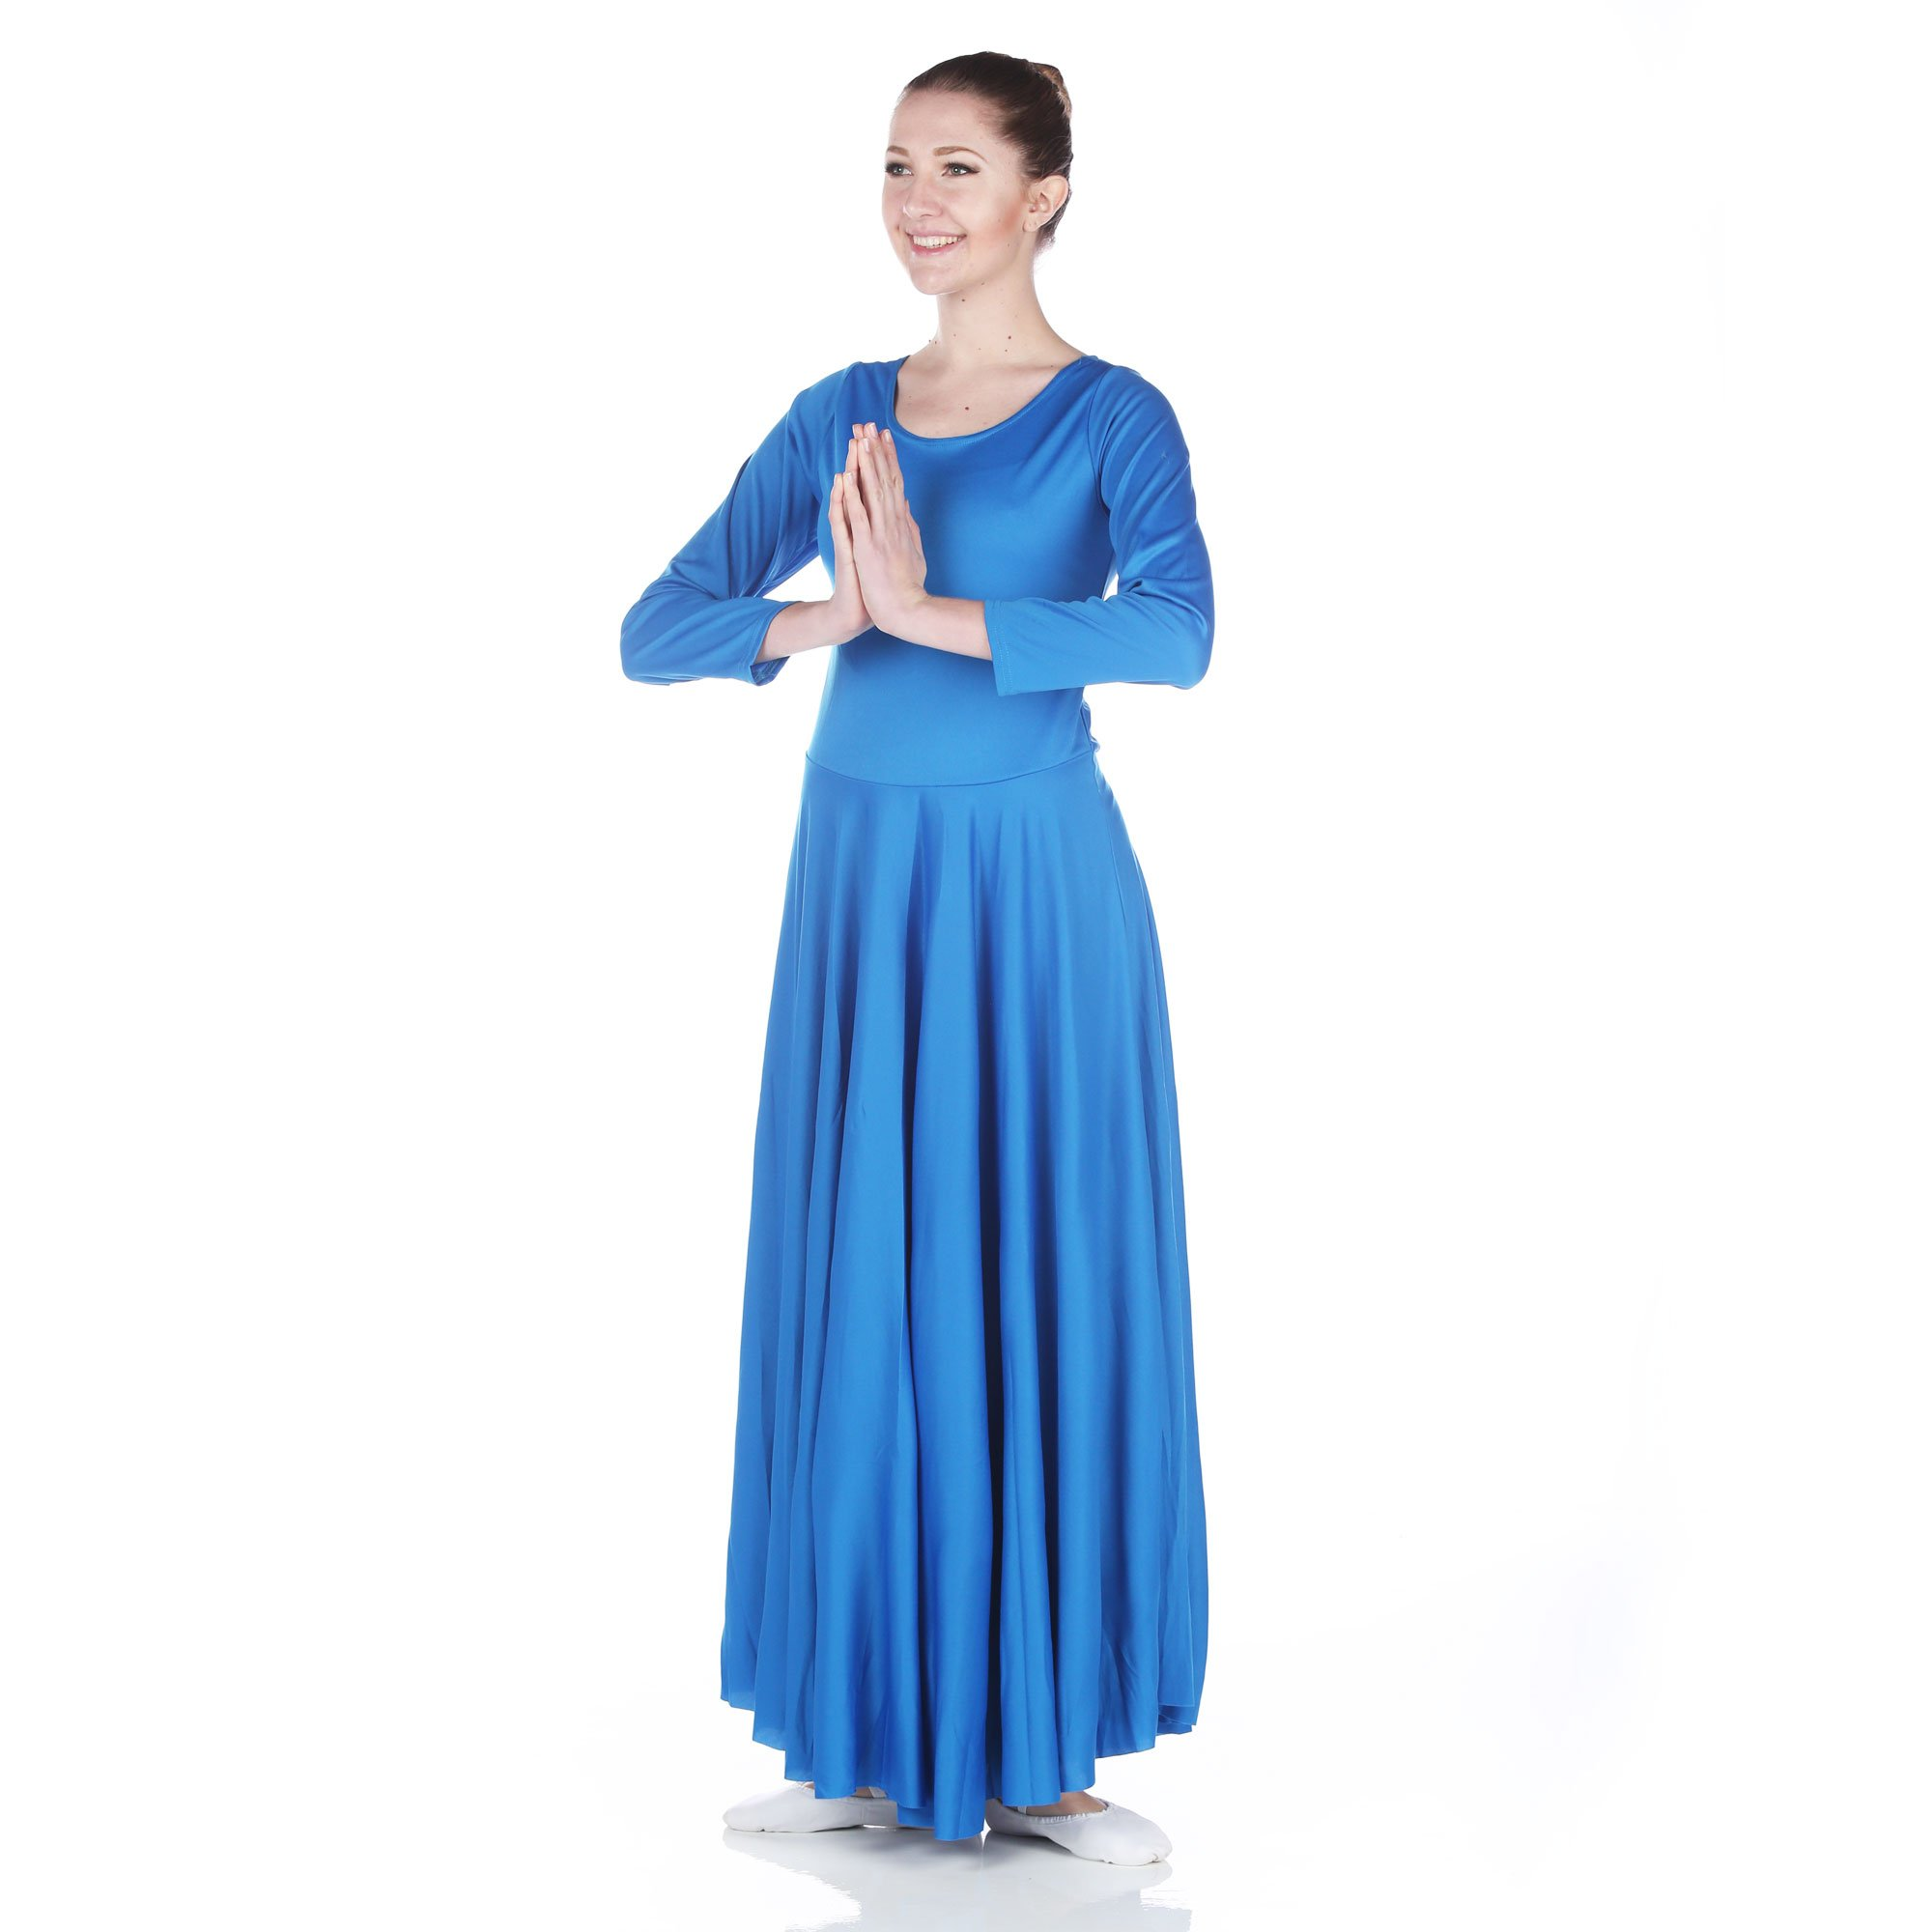 Danzcue Womens Praise Loose Fit Full Length Long Sleeve Dance Dress, Bright Royal, Small by Danzcue